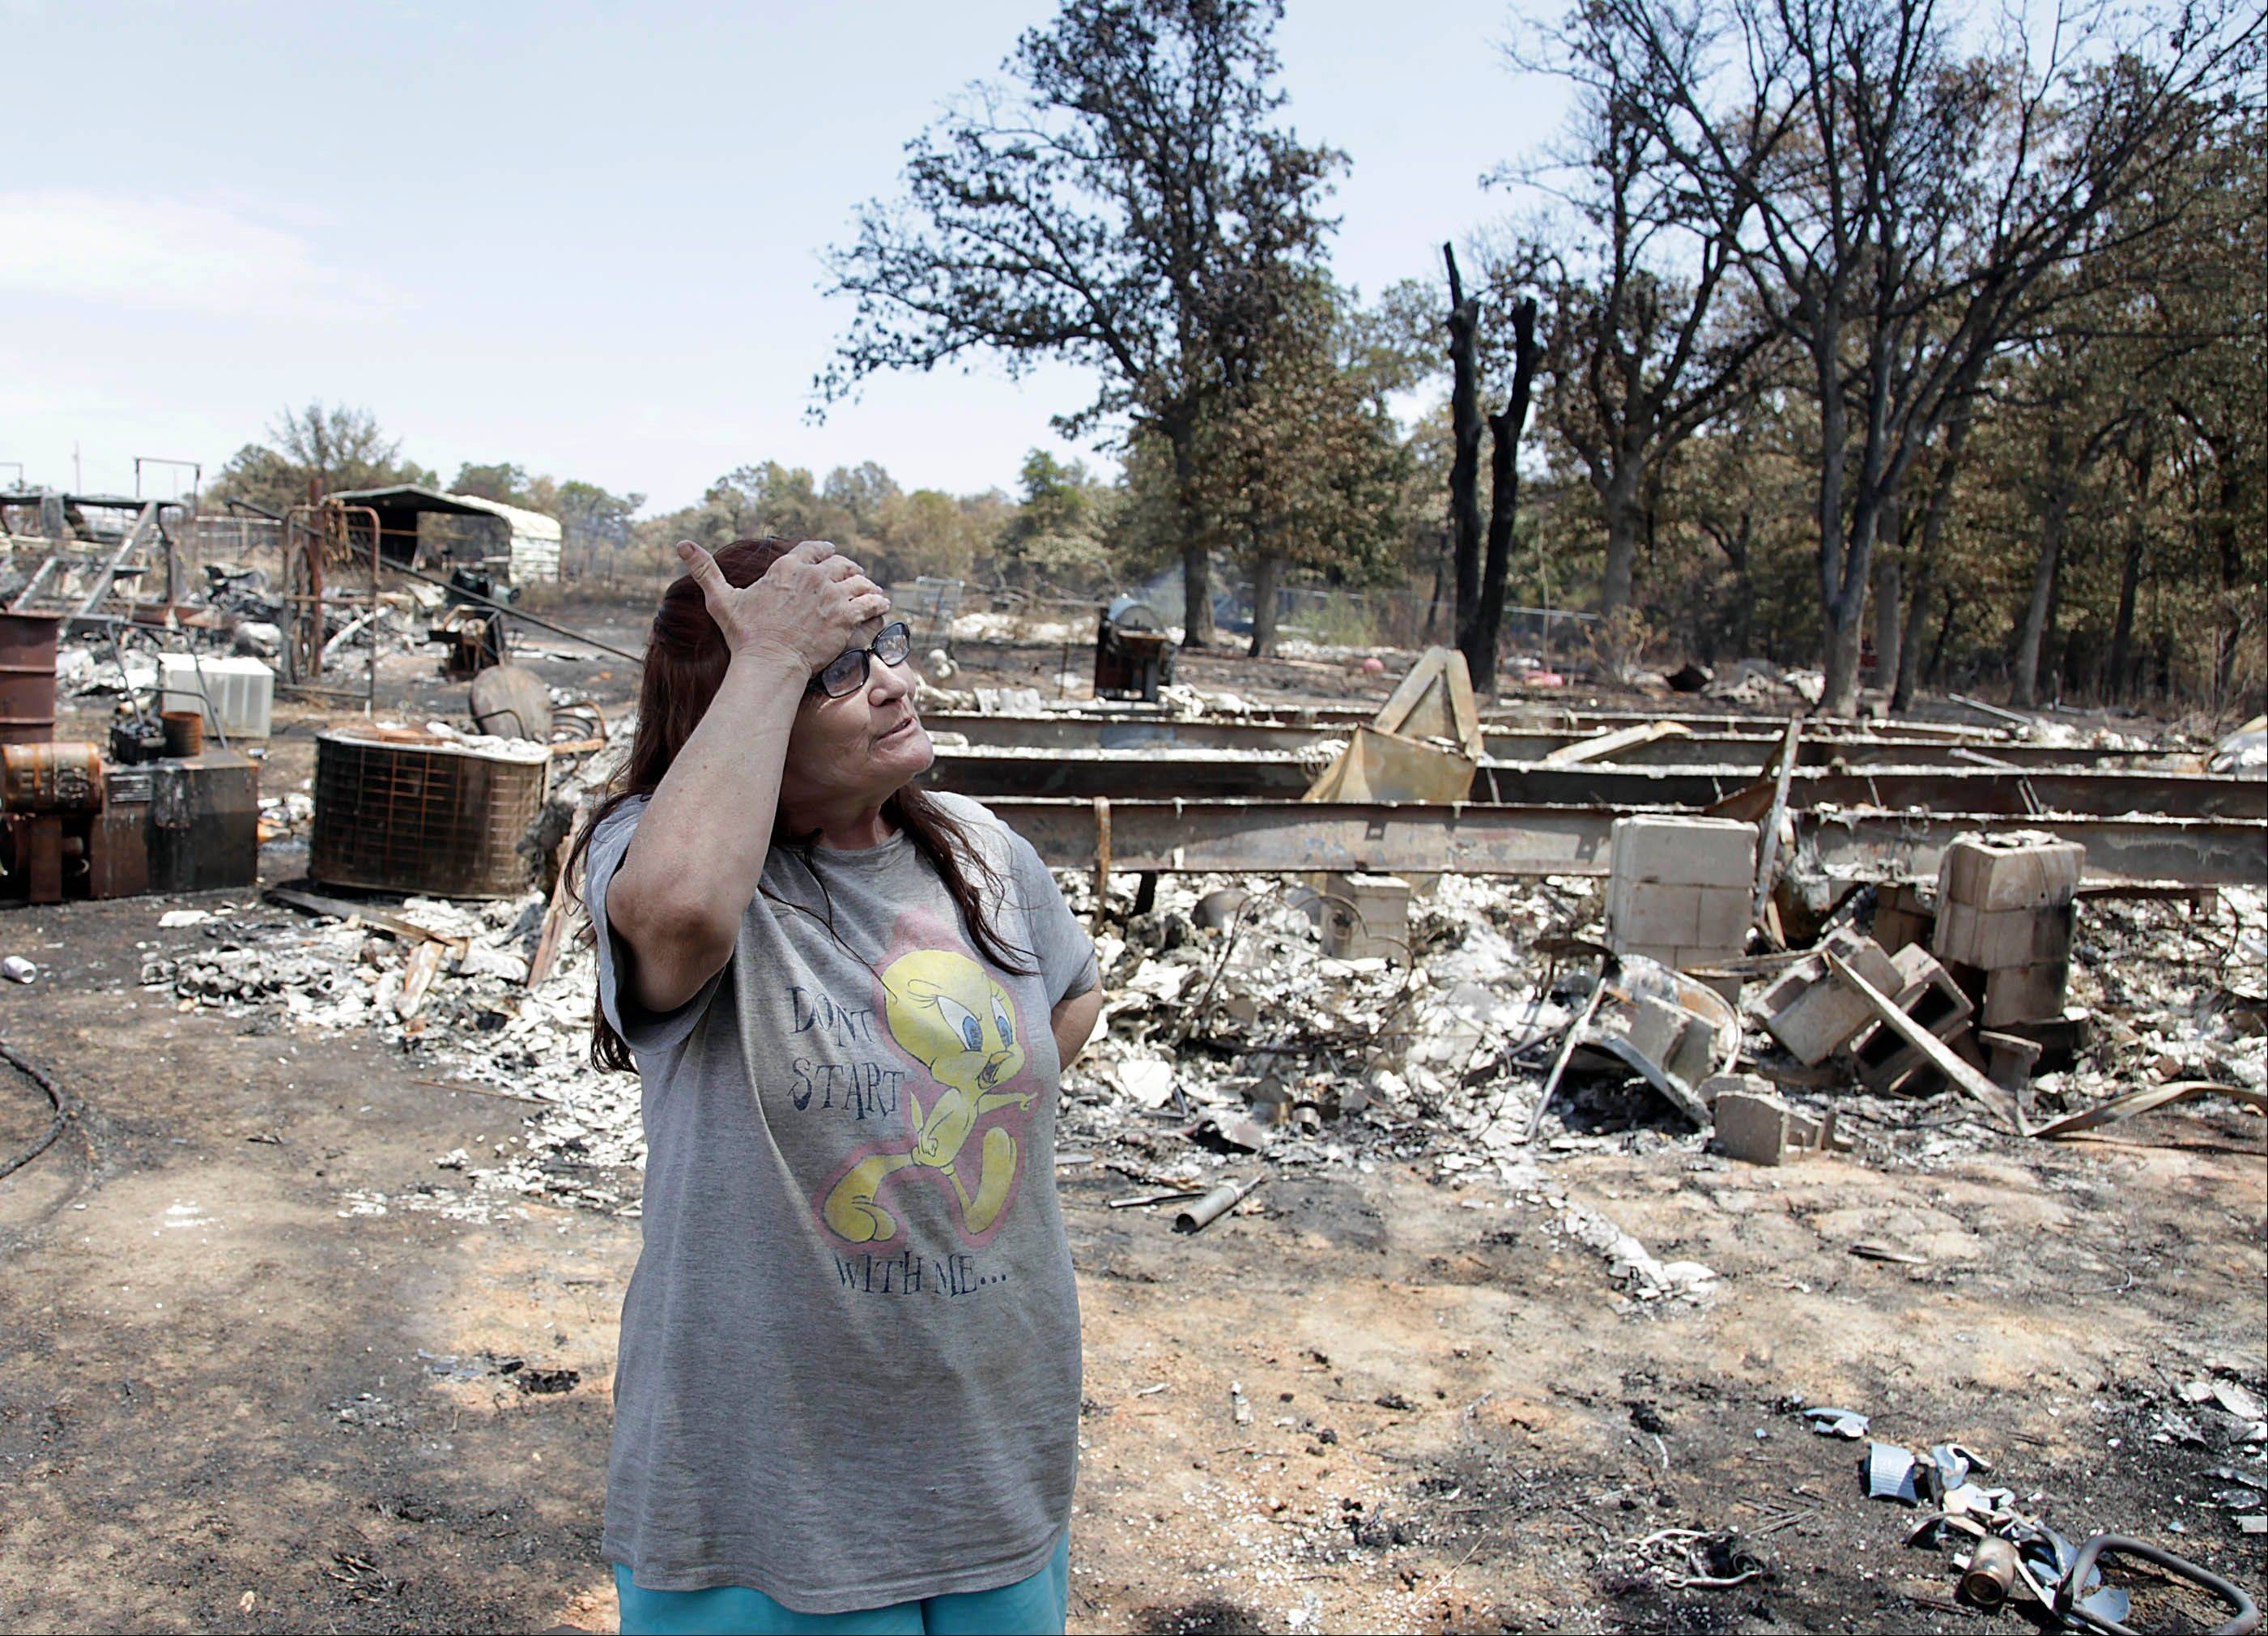 Sandra Jordan reacts as she speaks about the remains of her home (in the background) that was destroyed by a wildfire in Mannford, Okla., Sunday.